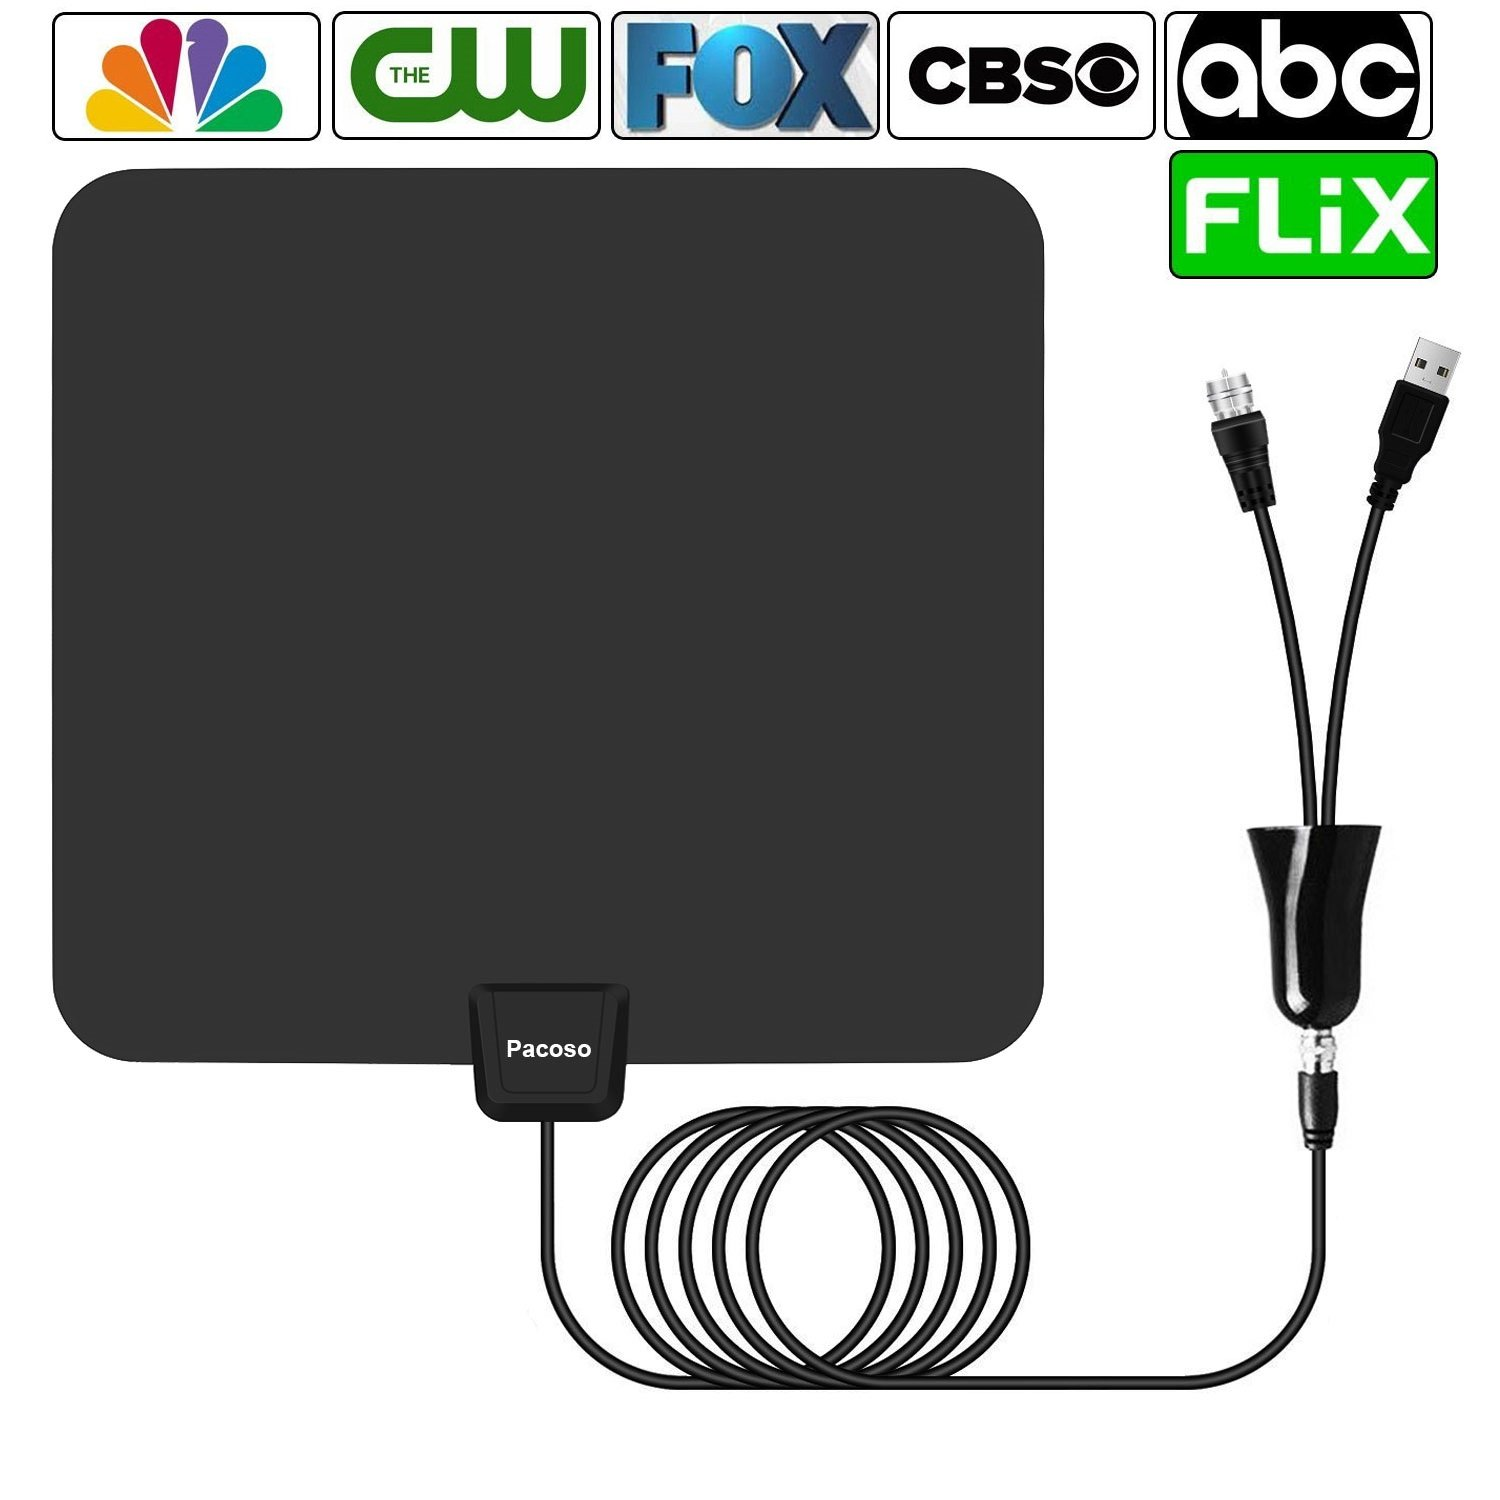 Antenna,Pacoso 75 Mile Range Amplified TV Antenna with Detachable Amplifier Signal Booster,2018 New Version Digital Antenna Local Broadcast 4K/HD/VHF/UHF Signal TV Channels for Smart Television.